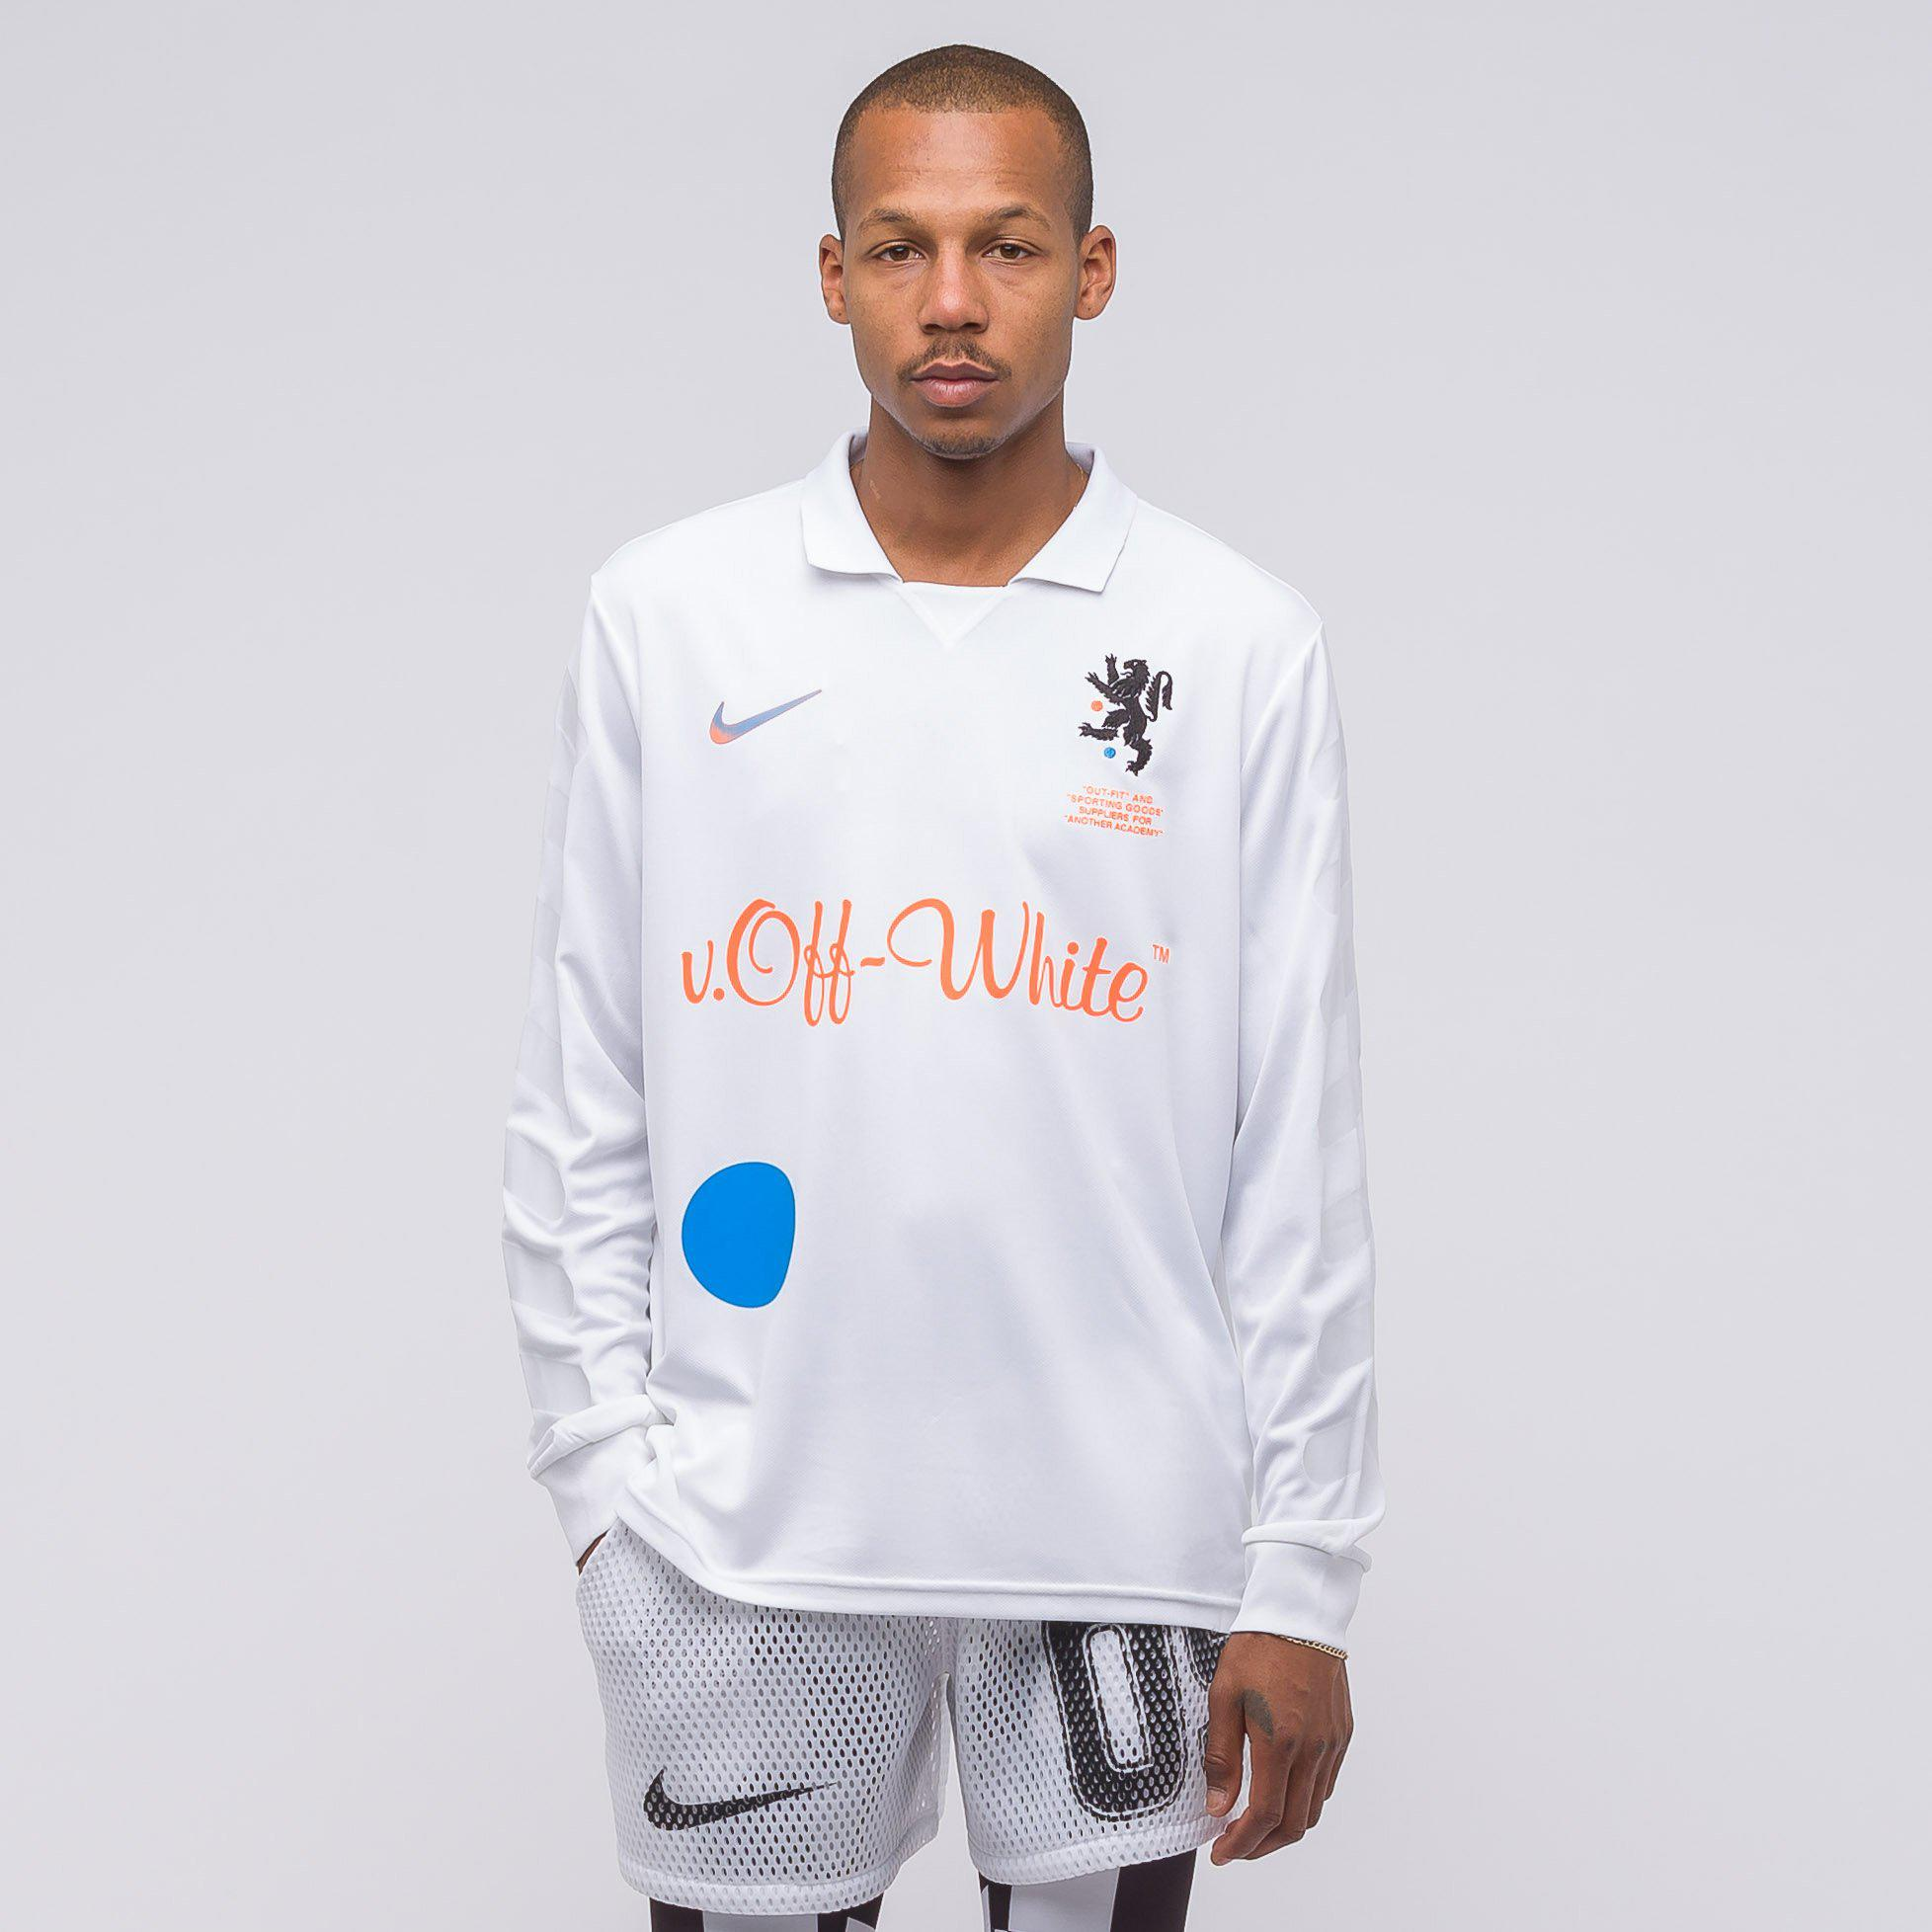 Lyst - Nike X Off-white Home Football Jersey In White orange in ... 30b67681c